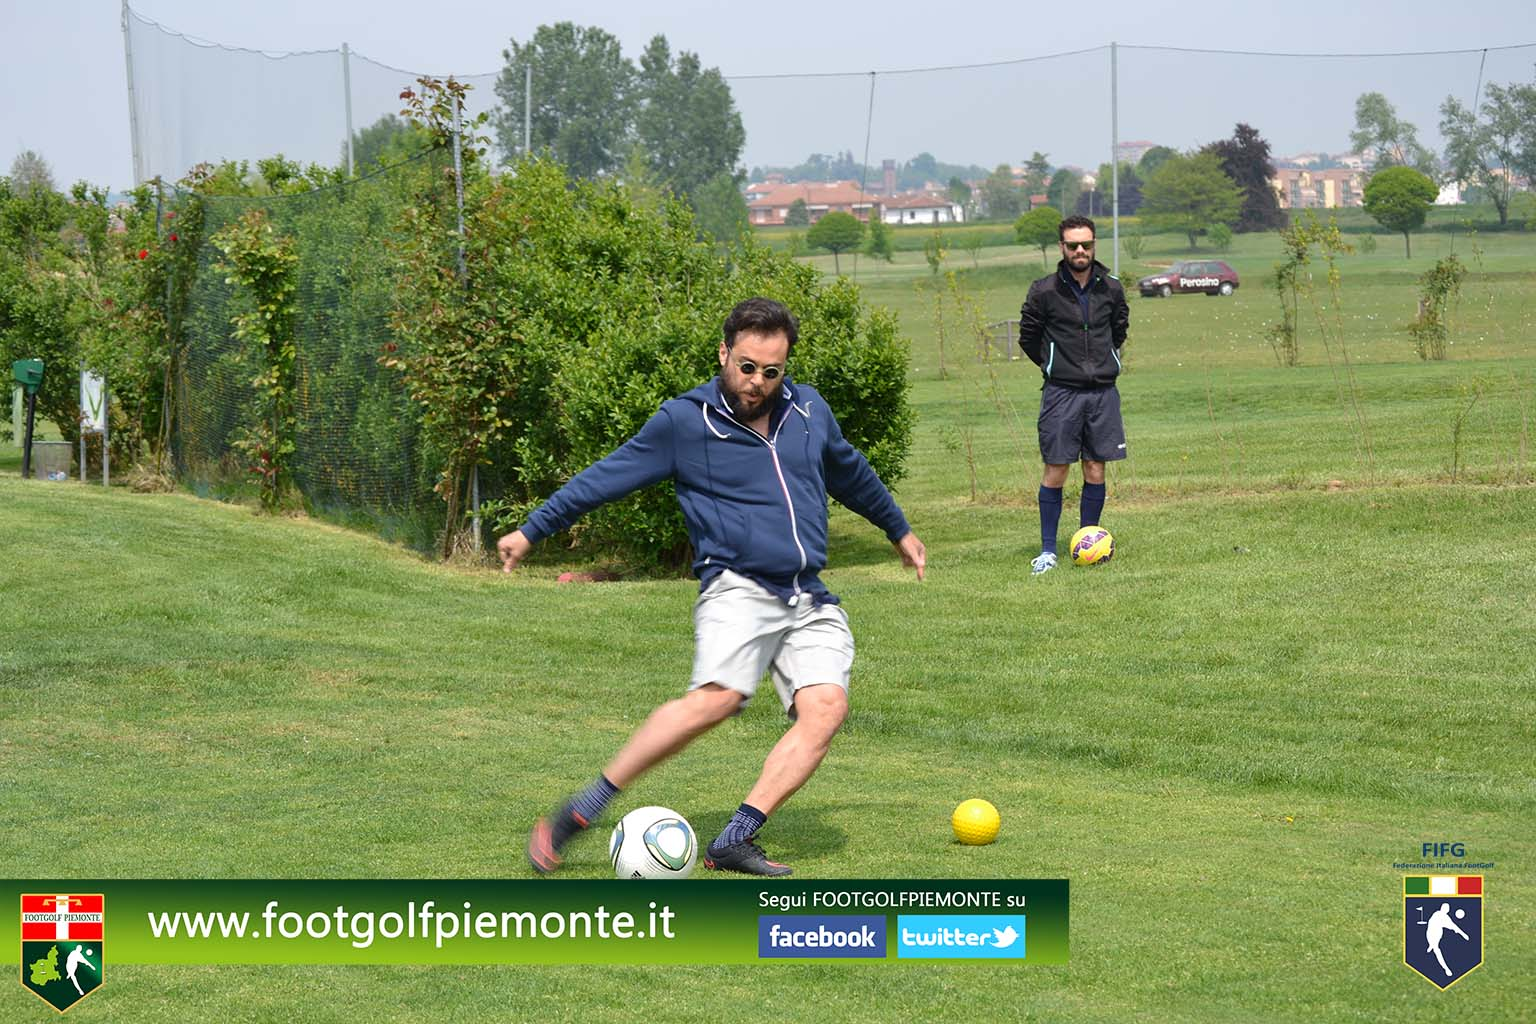 FOTO 9 Regions' Cup Footgolf Piemonte 2016 Golf Città di Asti (At) 30apr16-40